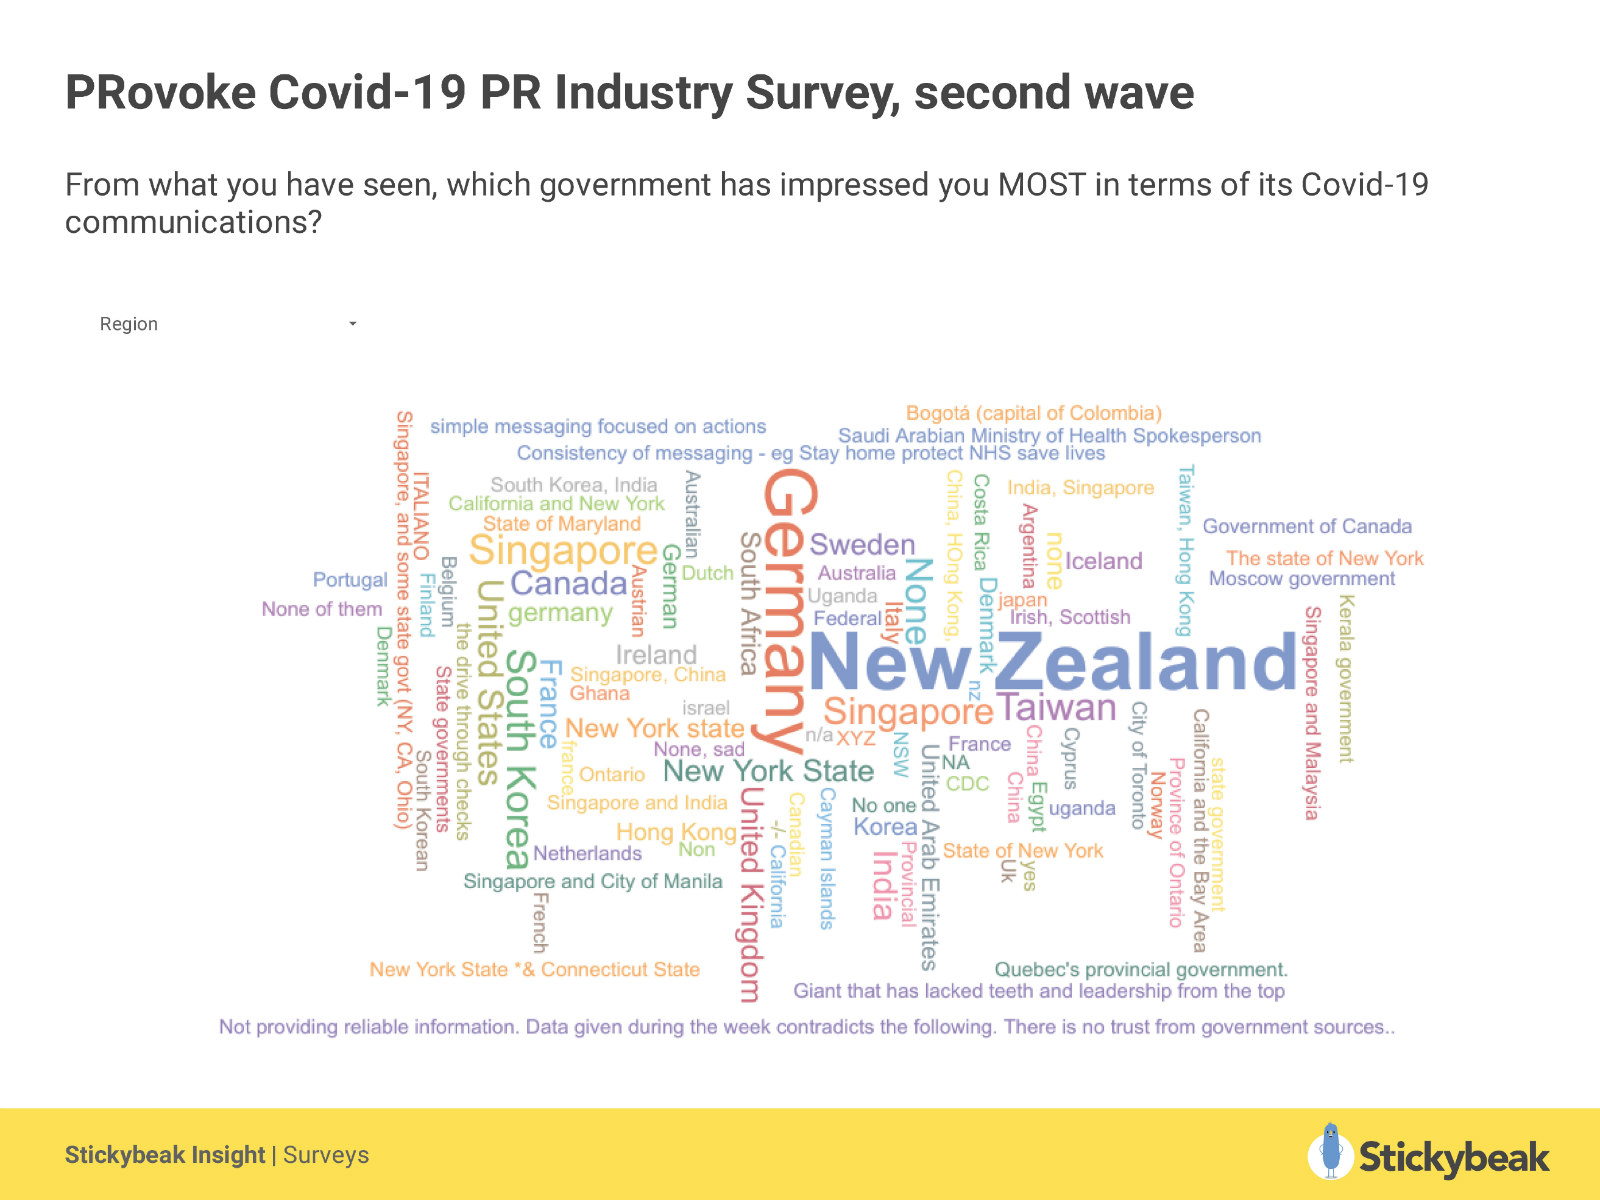 Covid-19 Comms: US Government Worst, New Zealand & Germany Best Say PR Pros